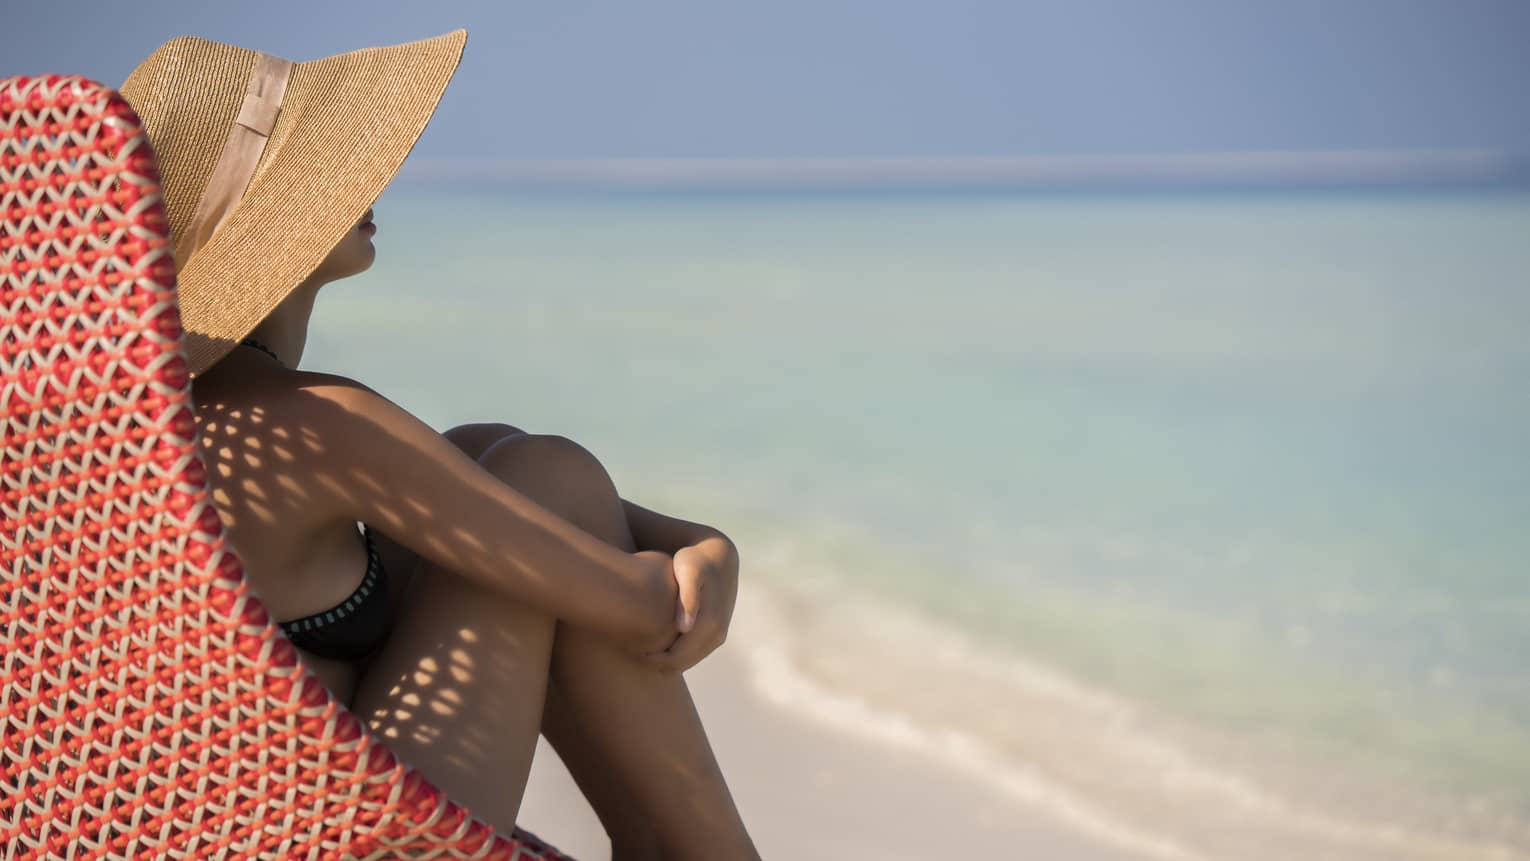 Side of woman wearing sunhat sitting in red wicker beach chair